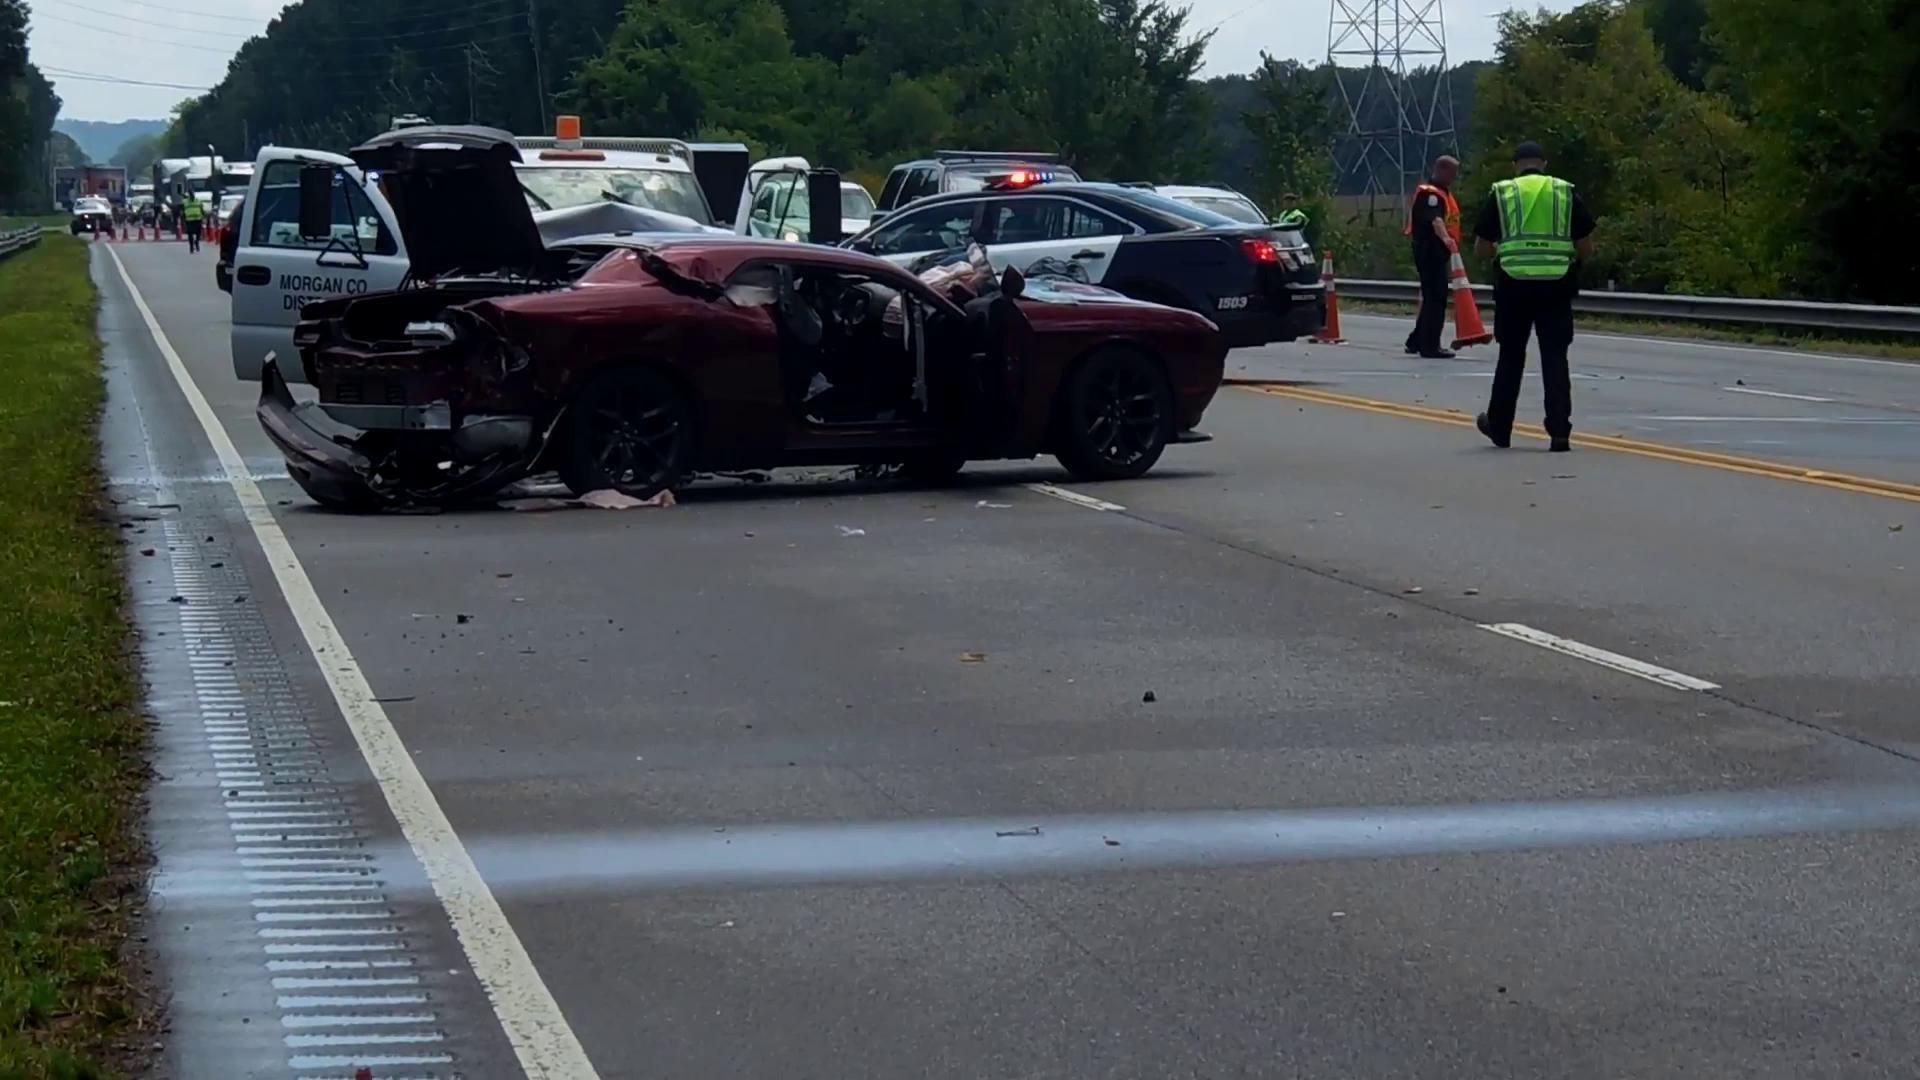 Scene from July 31, 2019, Point Mallard Parkway Accident